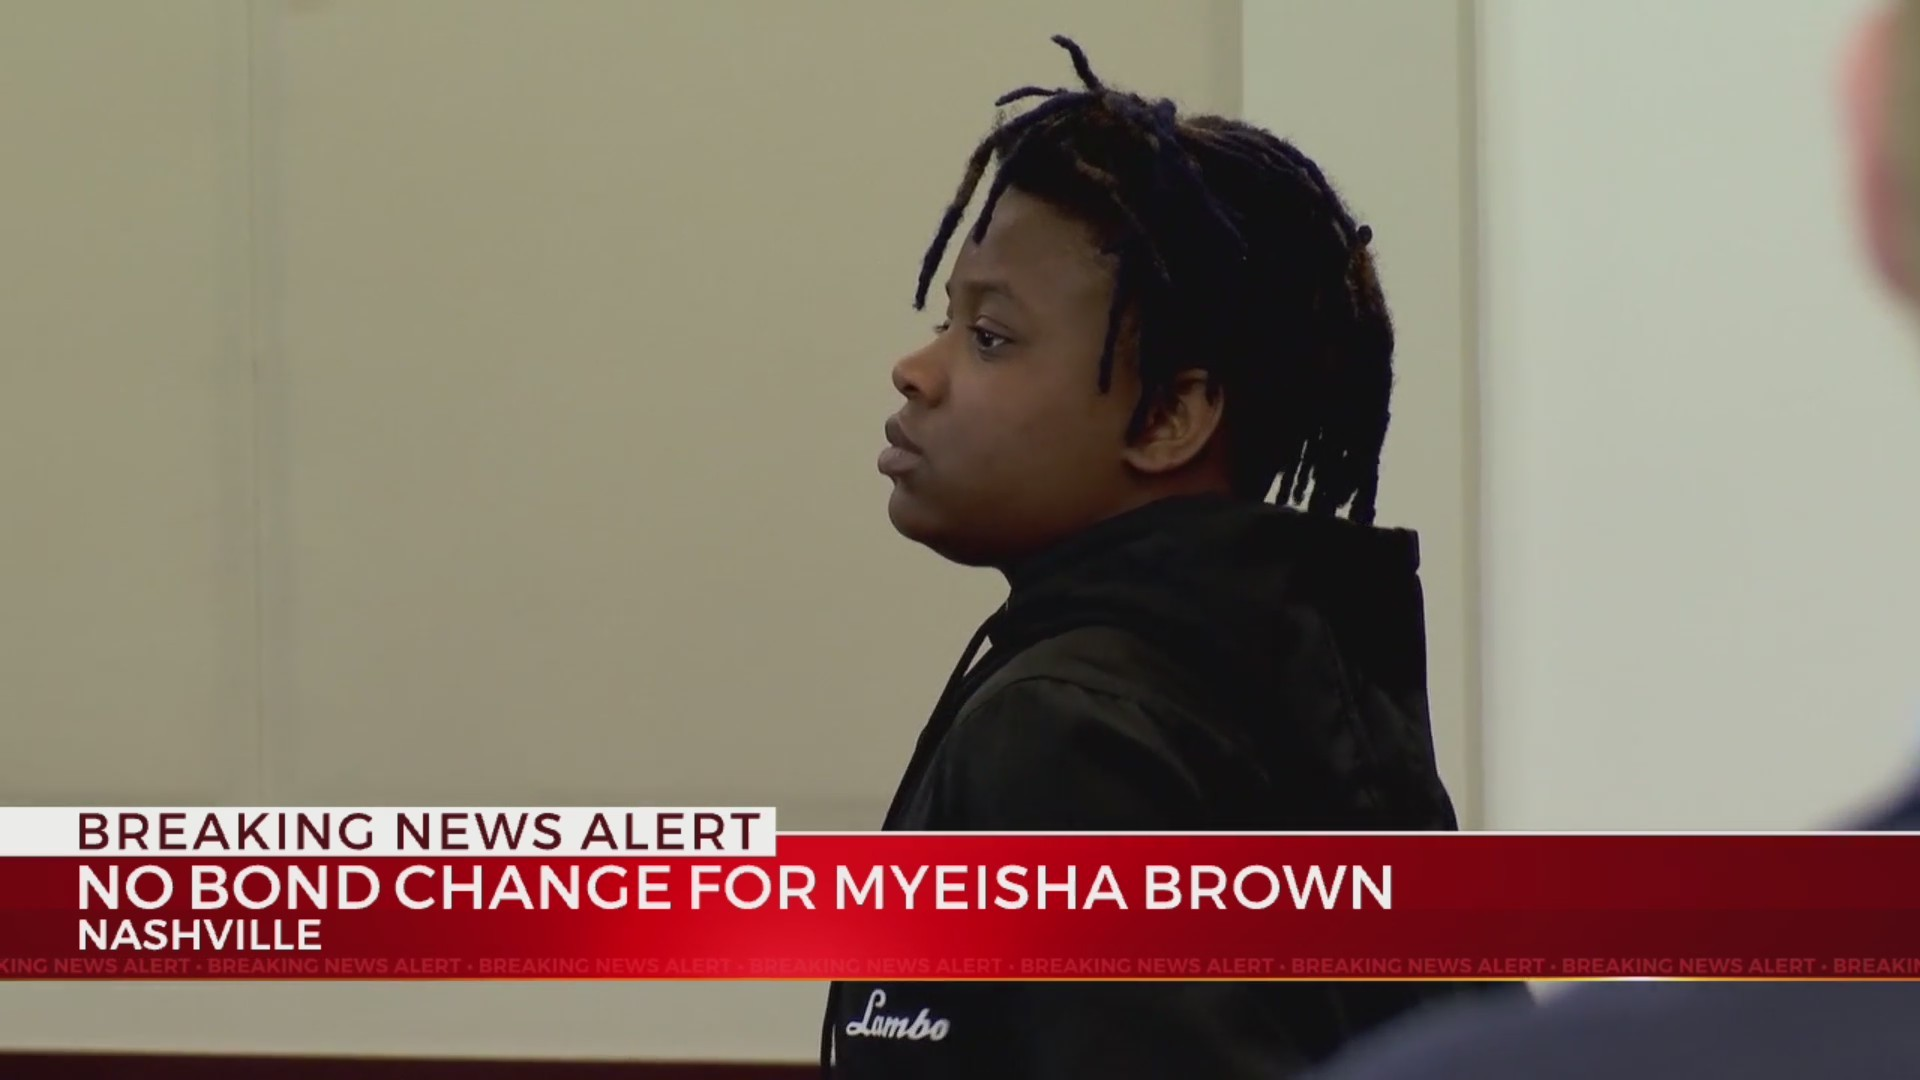 Judge does not revoke bond of 18-year-old murder suspect Myeisha Brown